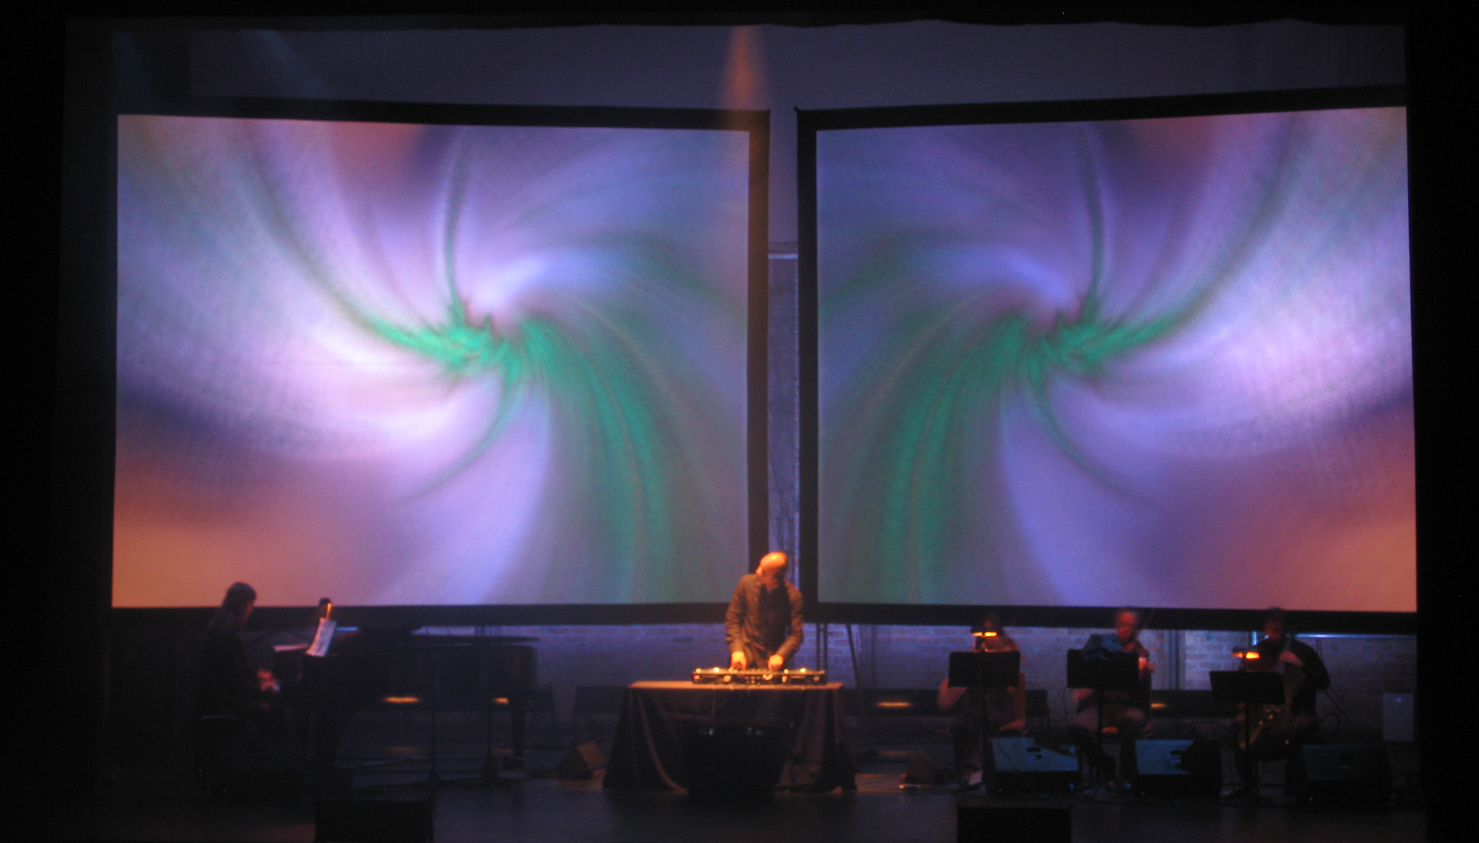 Video support forDJ Spooky at Texas Performing Arts